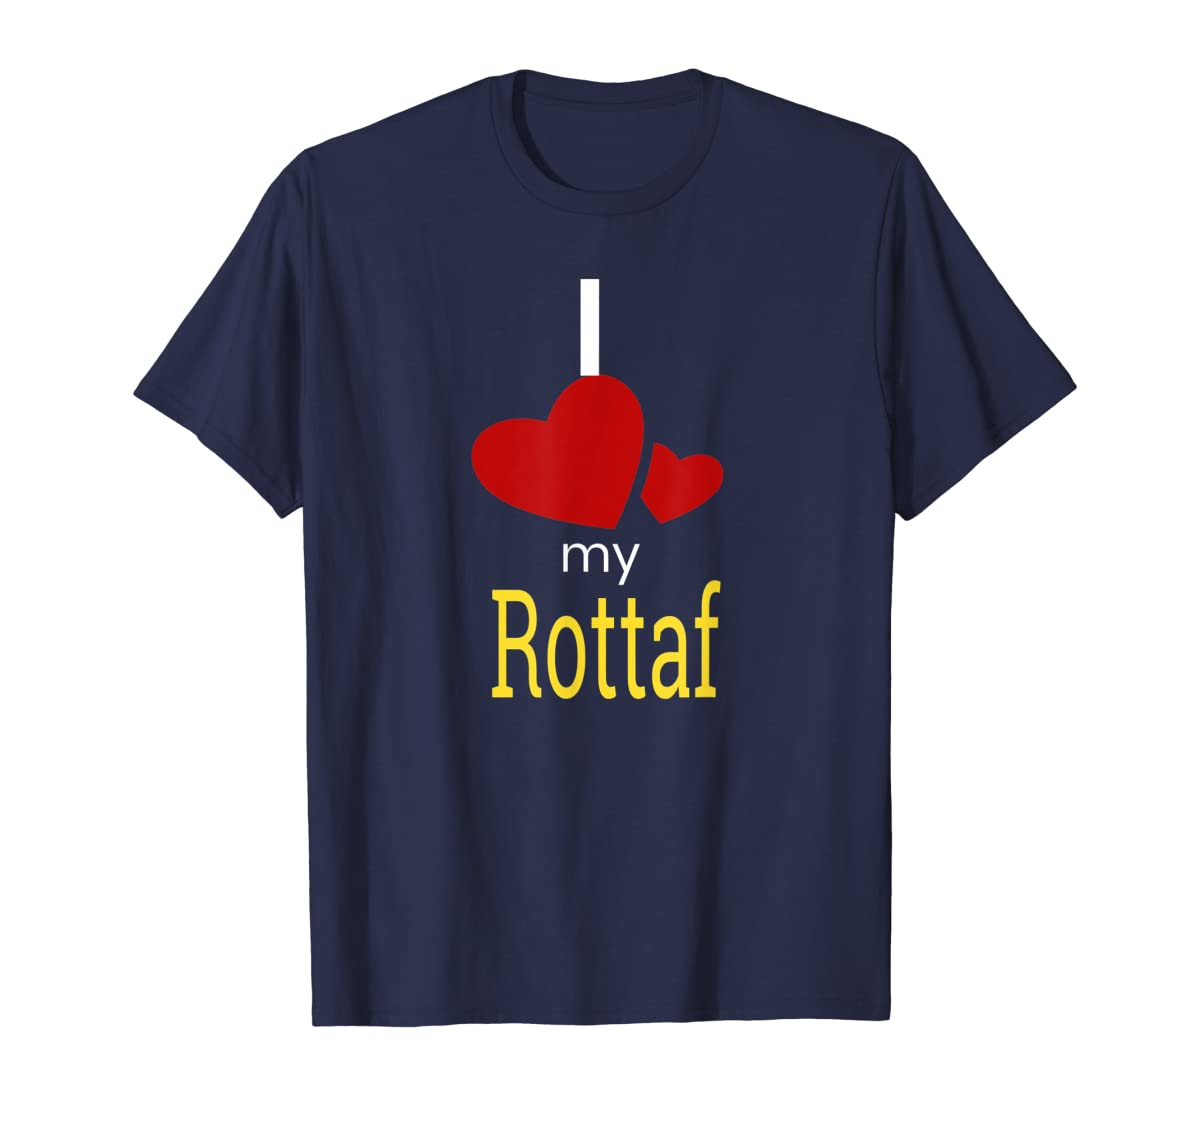 Rottaf Dog Shirt Love Rottweiler + Afghan Hound =  T-Shirt-Men's T-Shirt-Navy